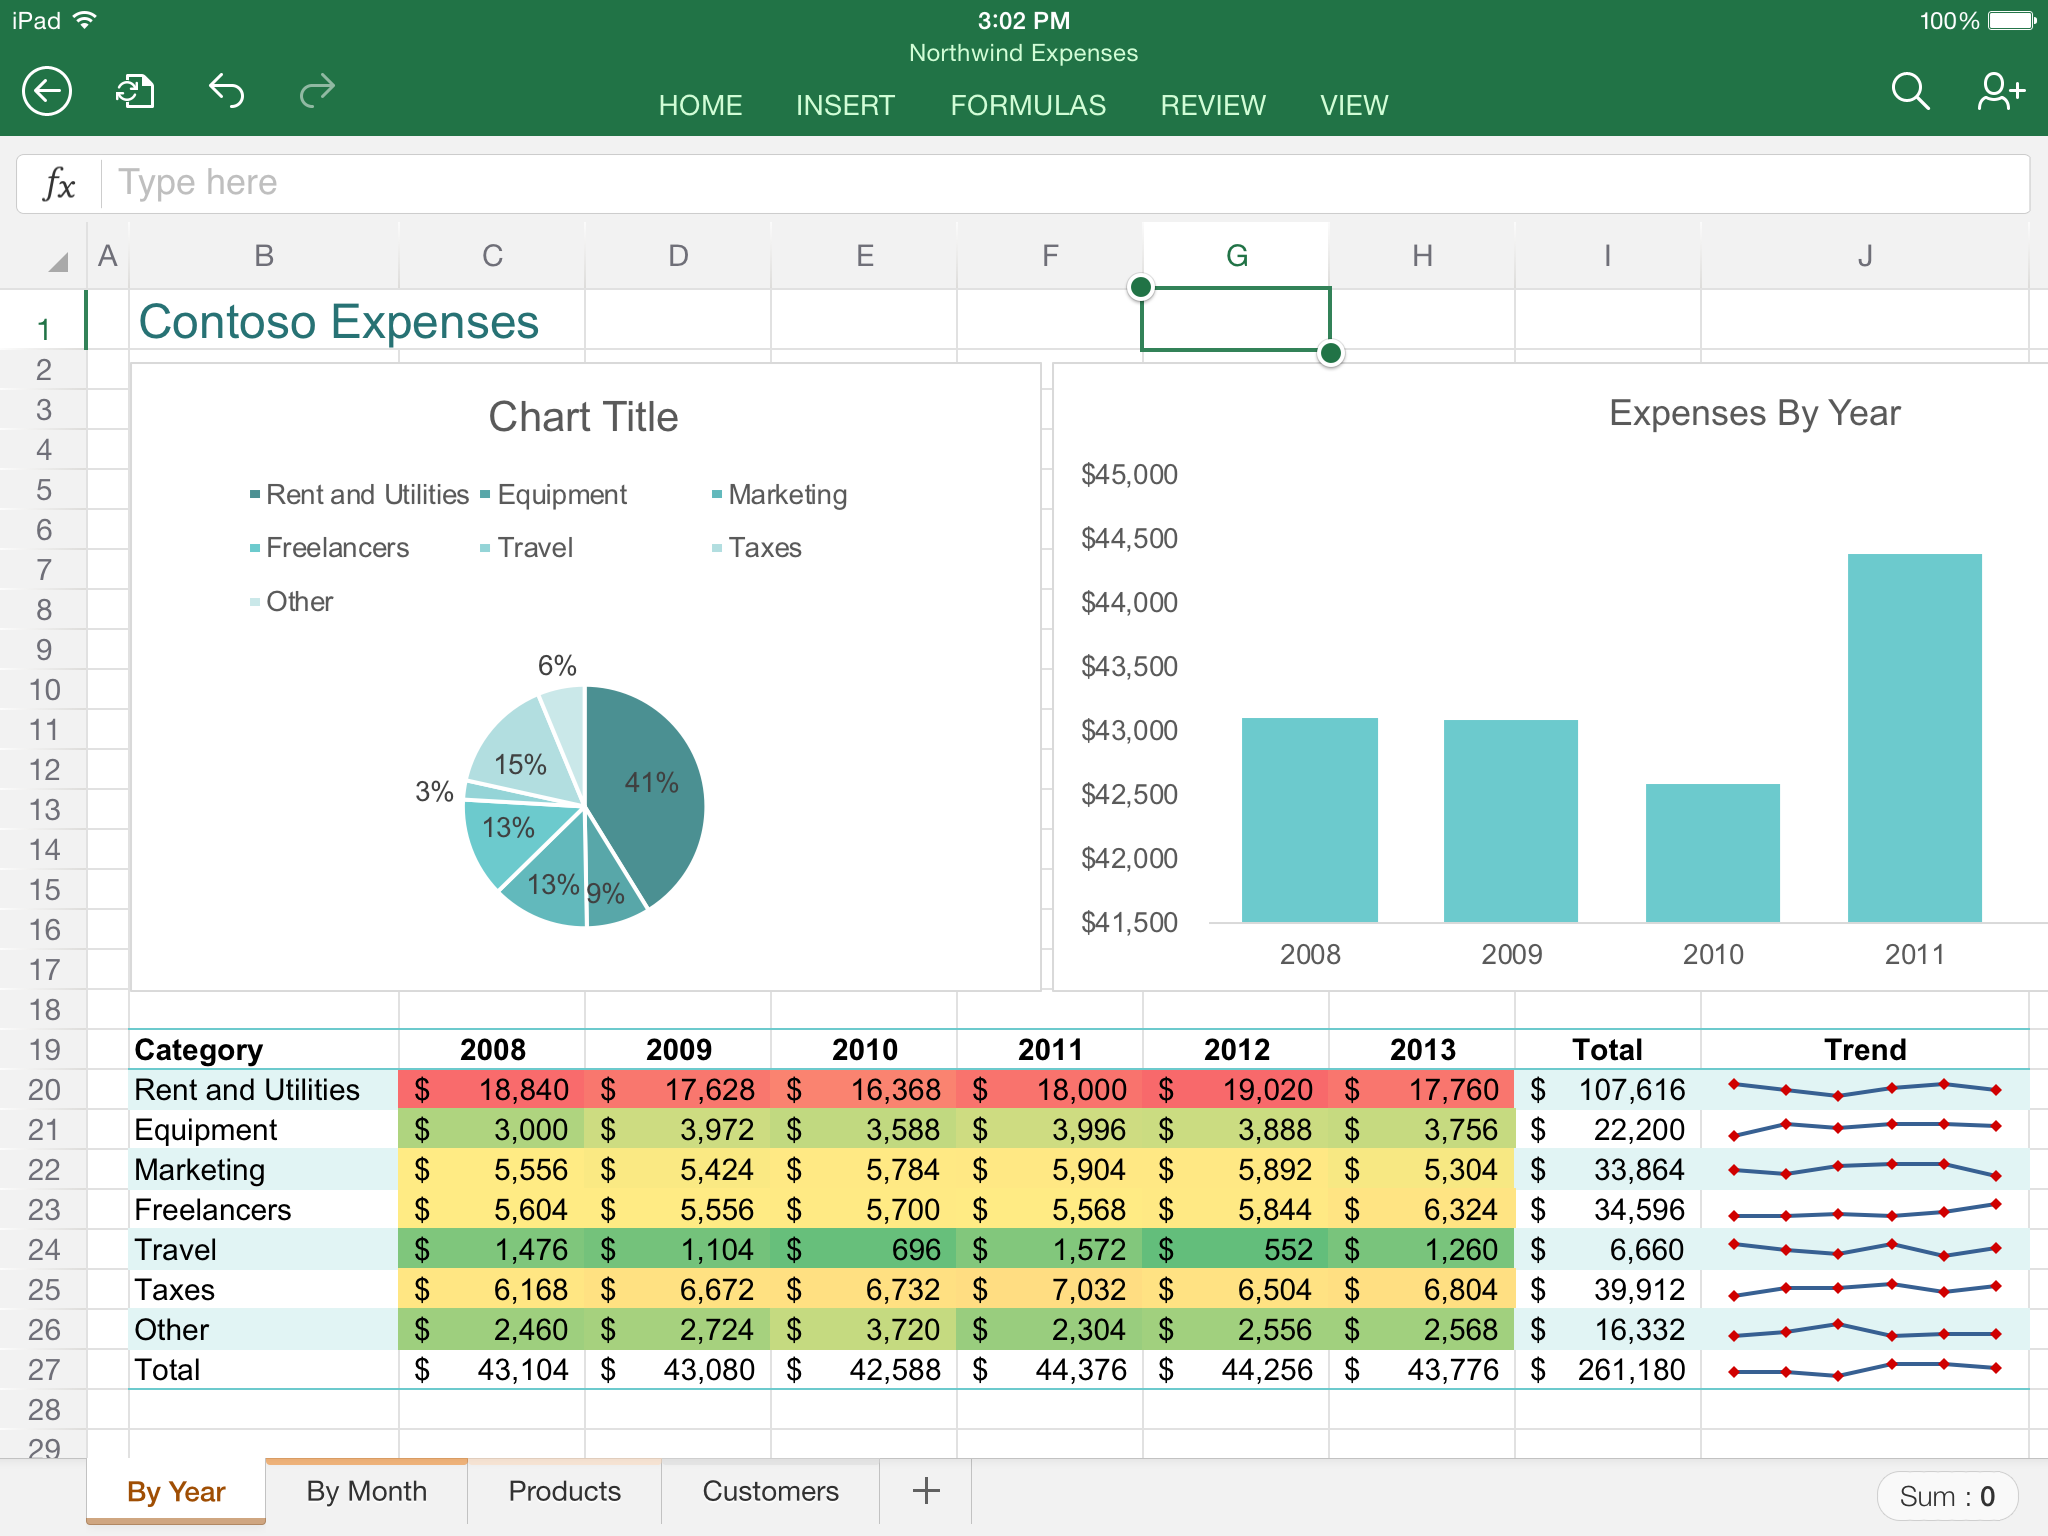 Ediblewildsus  Terrific App Highlight Excel  Mobile Digital Now With Marvelous Excel In Action With Delightful Excel Skills Test Also Find Links In Excel In Addition Frequency Table Excel And How To Search Excel As Well As Random Number Generator In Excel Additionally Excel Cagr Formula From Youstonybrookedu With Ediblewildsus  Marvelous App Highlight Excel  Mobile Digital Now With Delightful Excel In Action And Terrific Excel Skills Test Also Find Links In Excel In Addition Frequency Table Excel From Youstonybrookedu